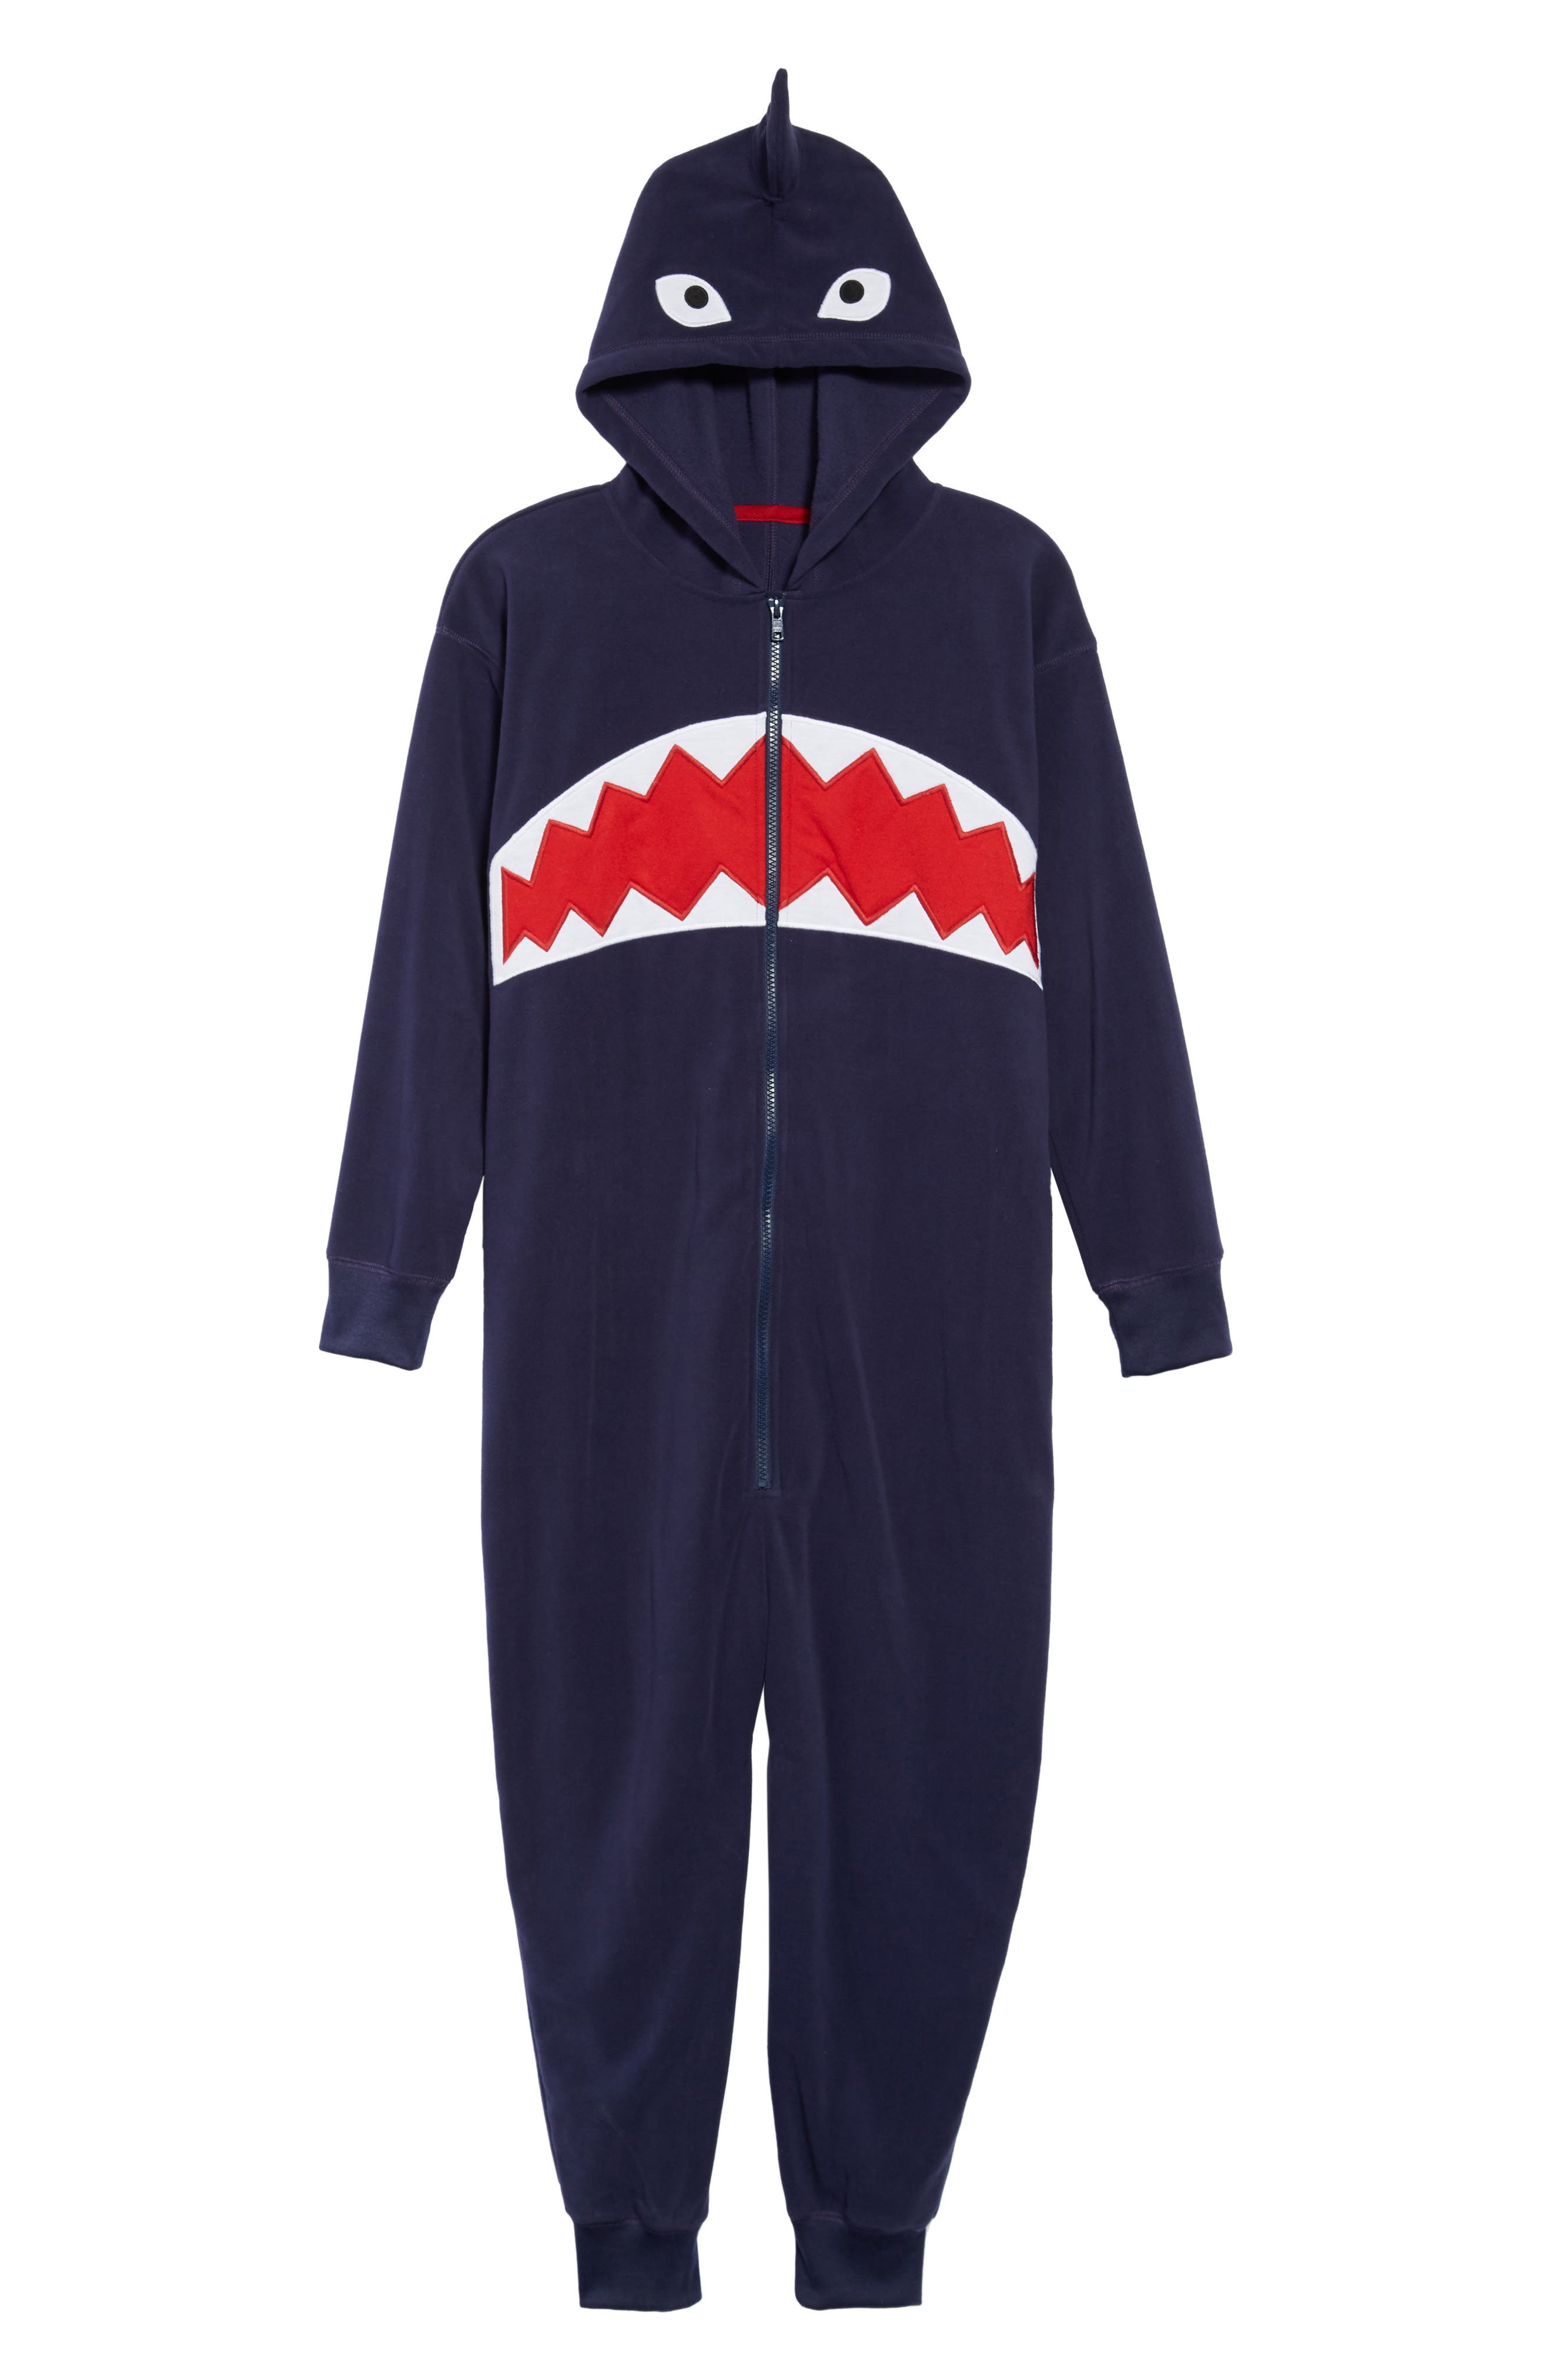 Animal One-Piece Hooded Pajamas,                             Main thumbnail 1, color,                             NAVY PEACOAT SHARK